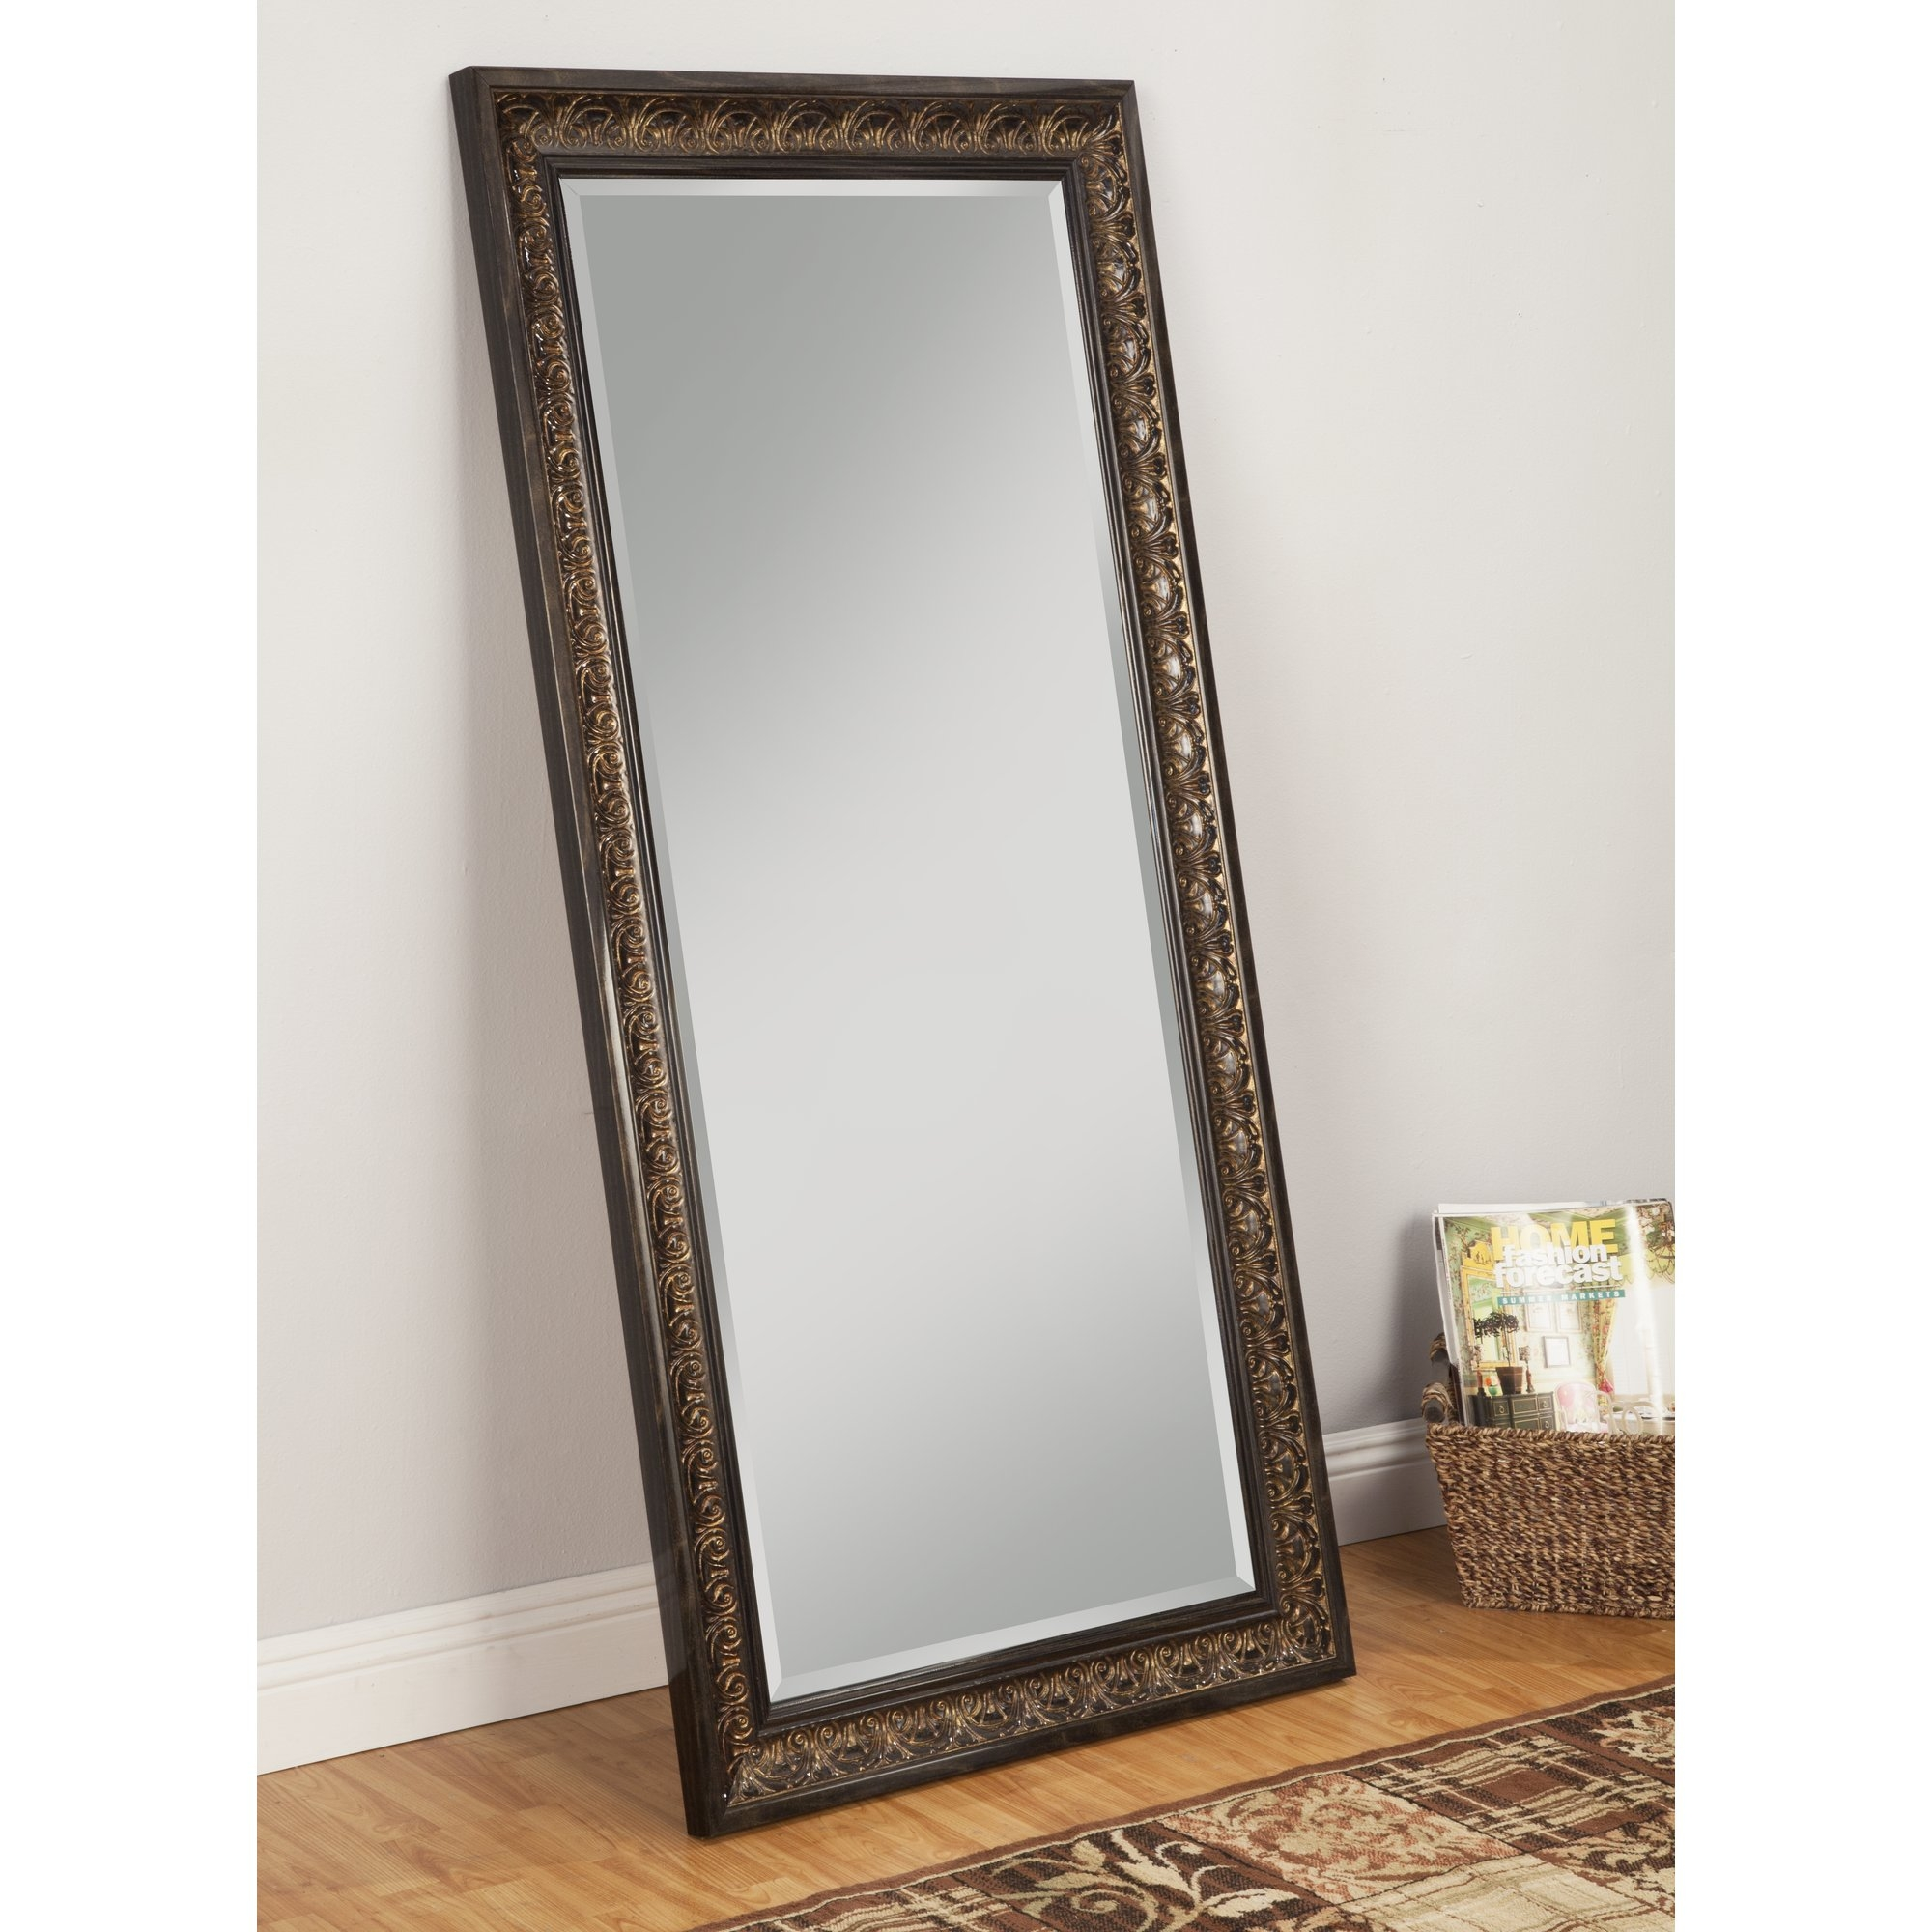 Floor Mirrors Youll Love Wayfair For Full Length Silver Mirror (Image 4 of 15)